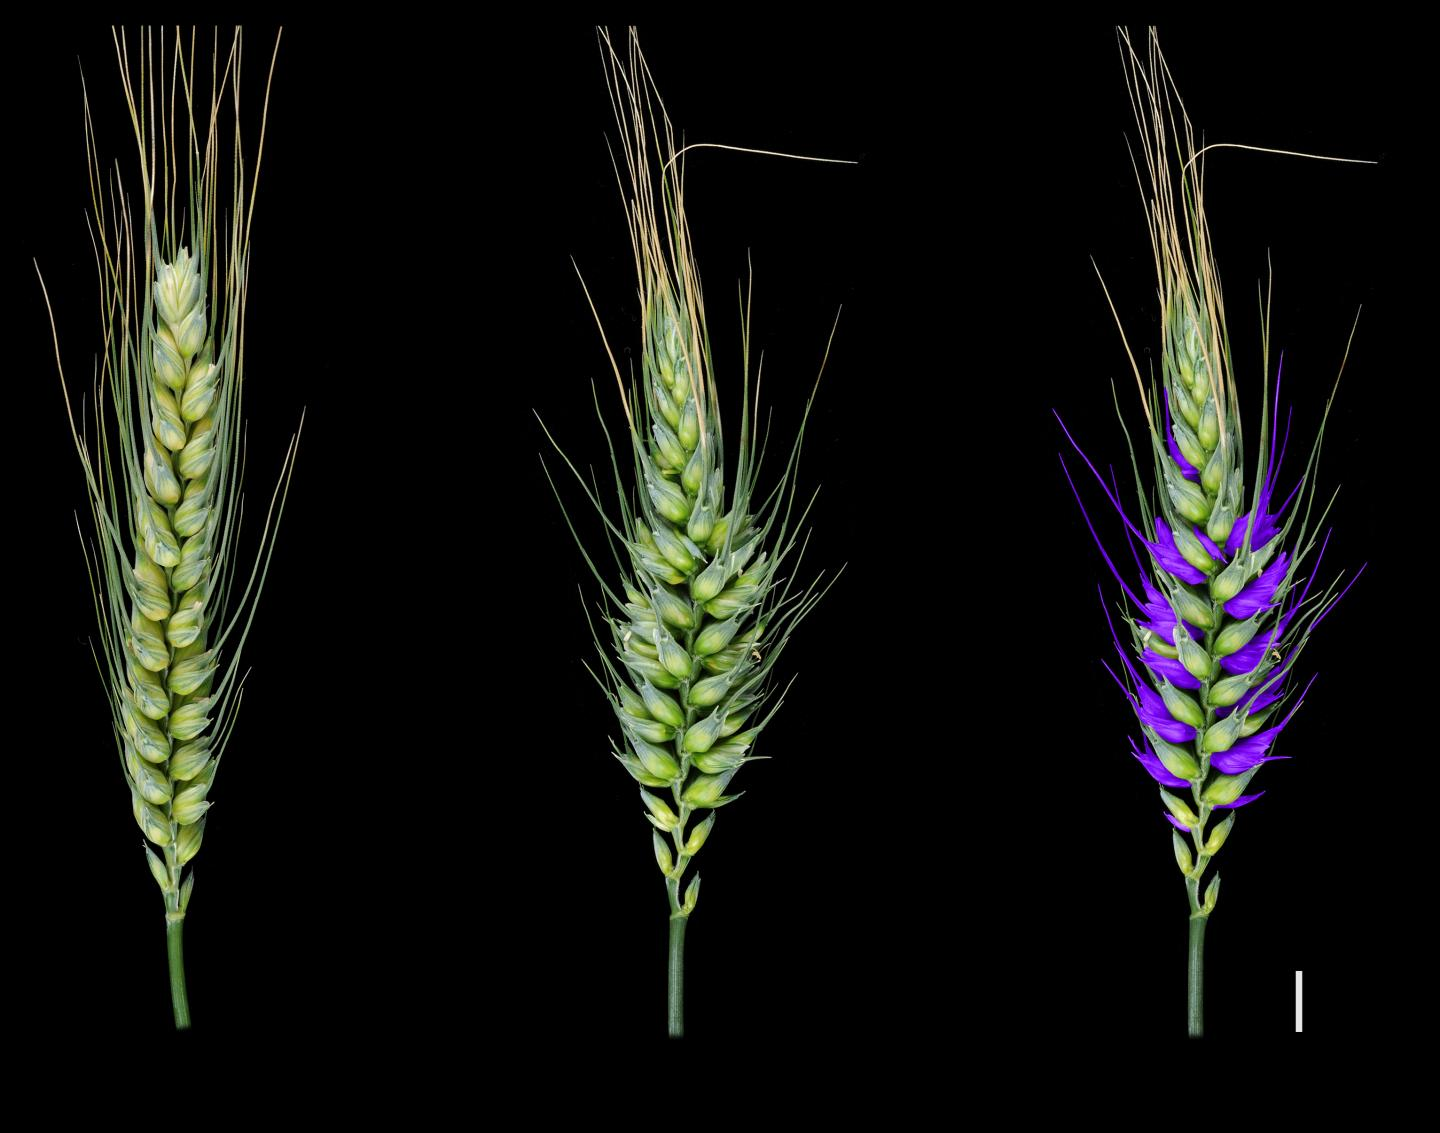 Wheat Discovery Could Shape Future Crops